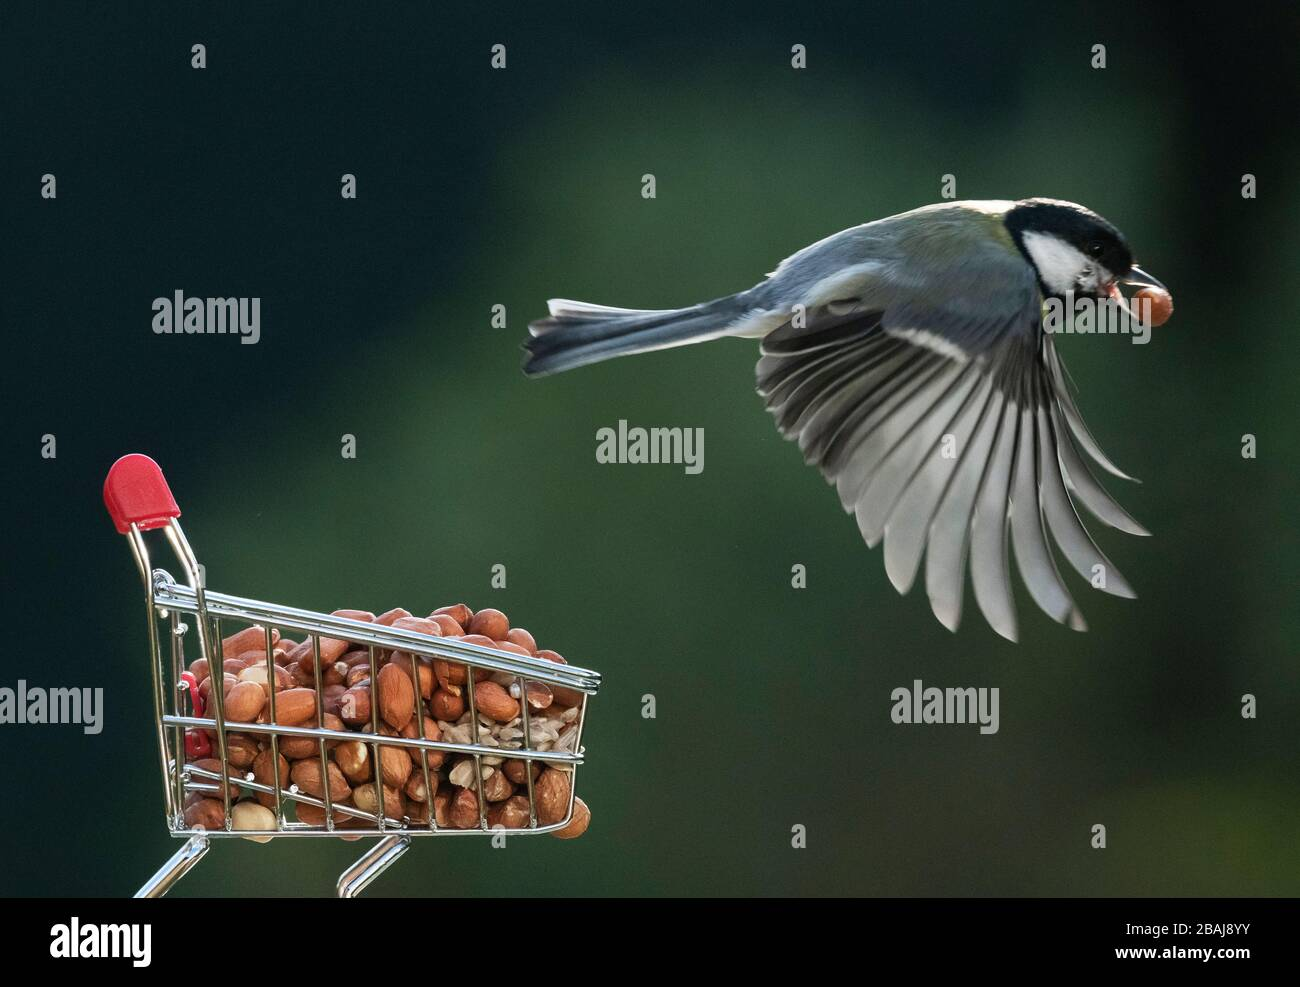 London, UK. 28th March 2020. Great Tit takes off from a peanut filled shopping trolley in a suburban garden. Credit: Malcolm Park/Alamy Live News. Stock Photo